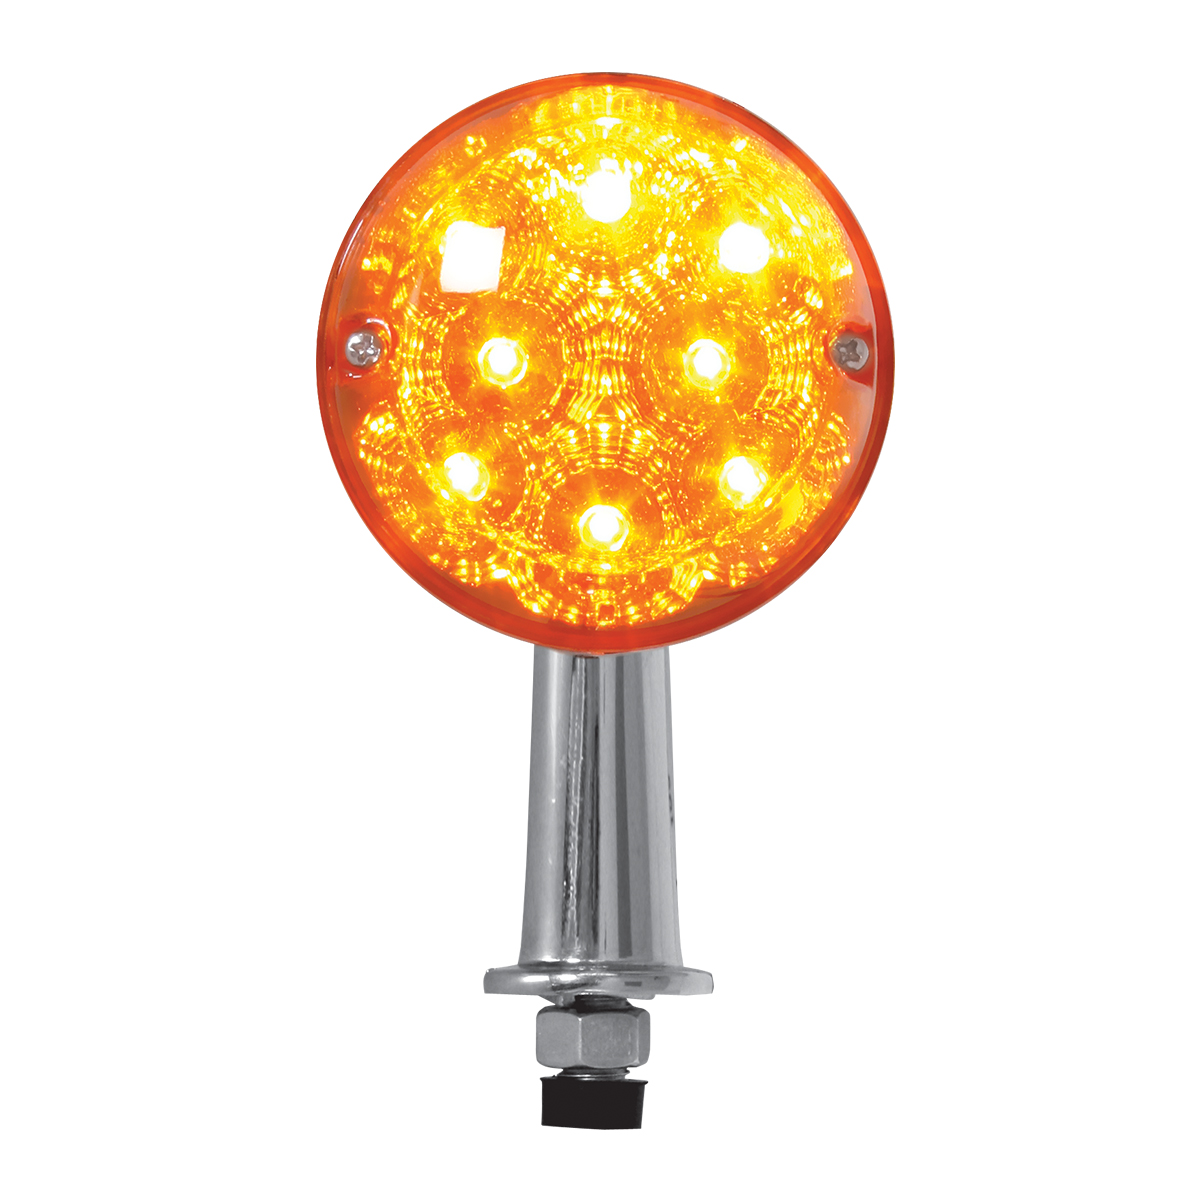 77804 Single Face Honda Spyder LED Pedestal Light in Amber/Amber